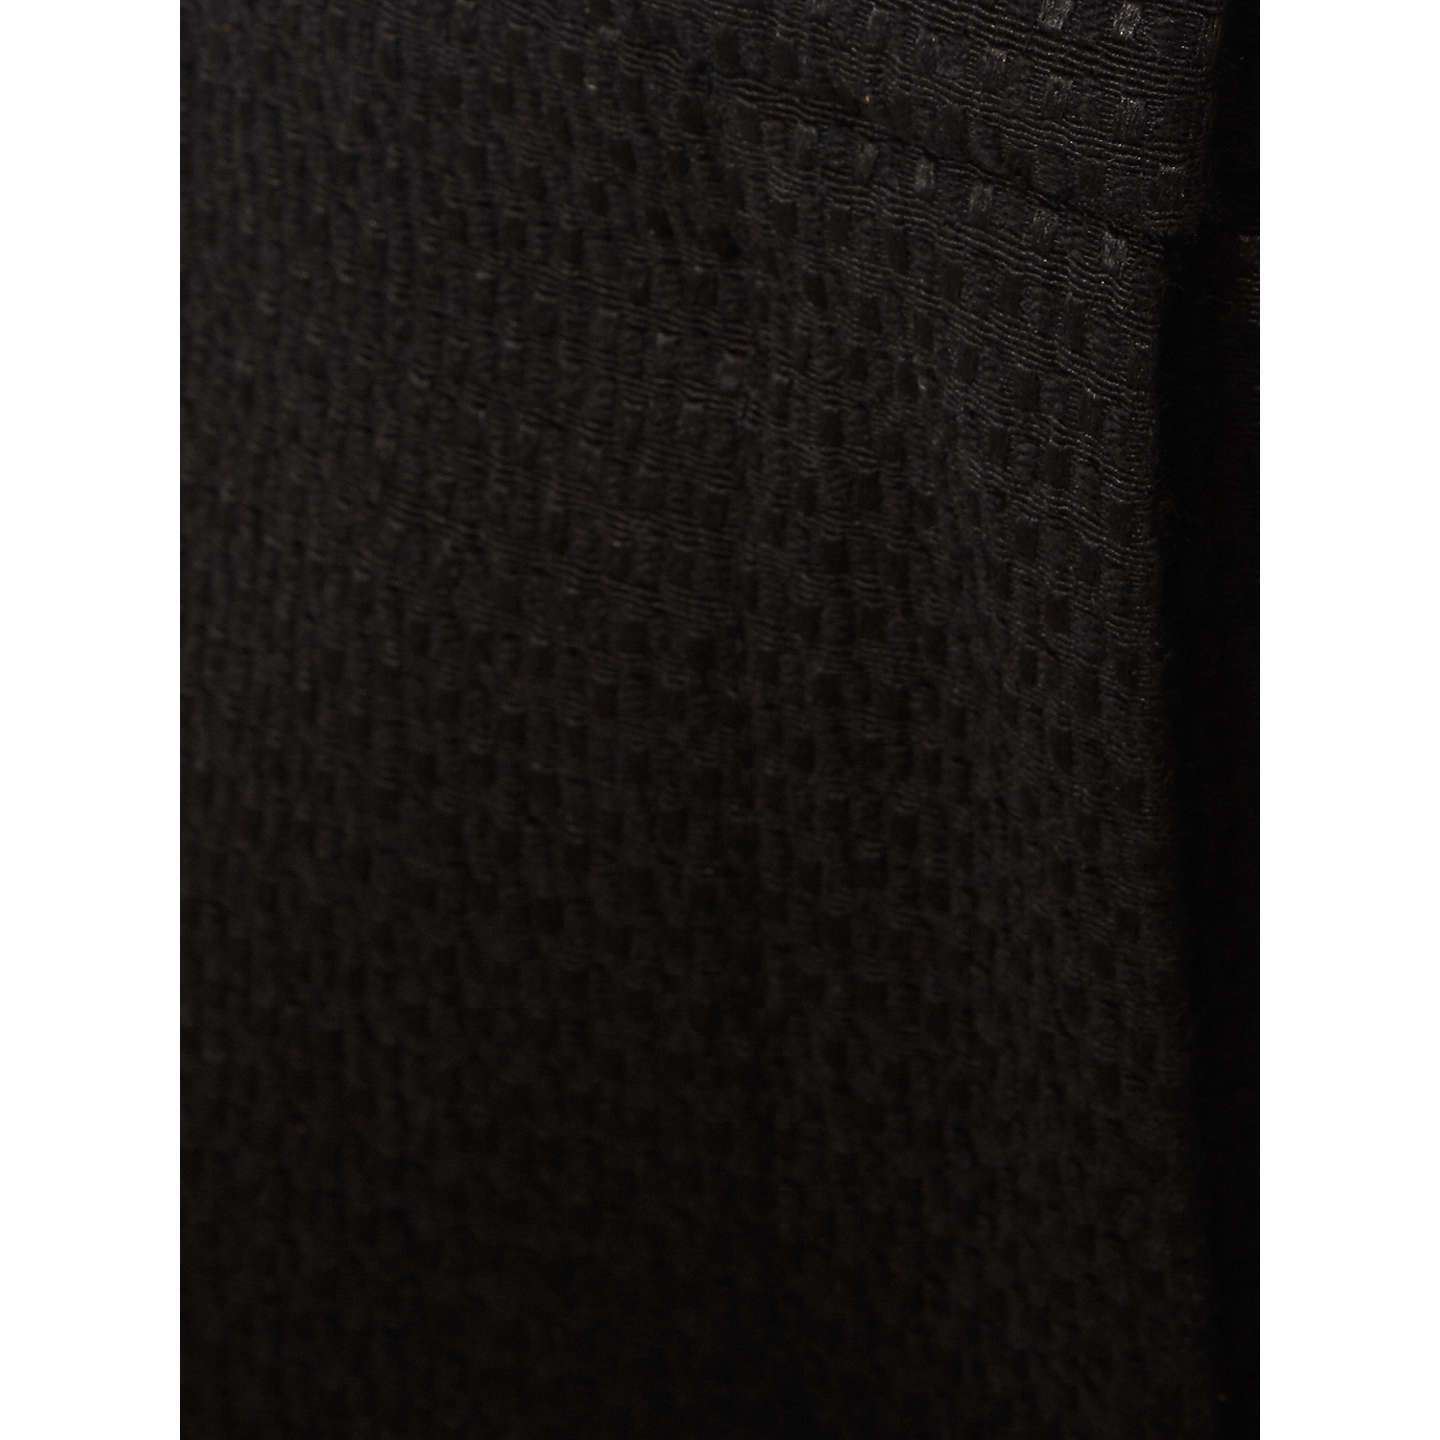 BuyPhase Eight Alice Jacquard Trouser, Black, 8 Online at johnlewis.com